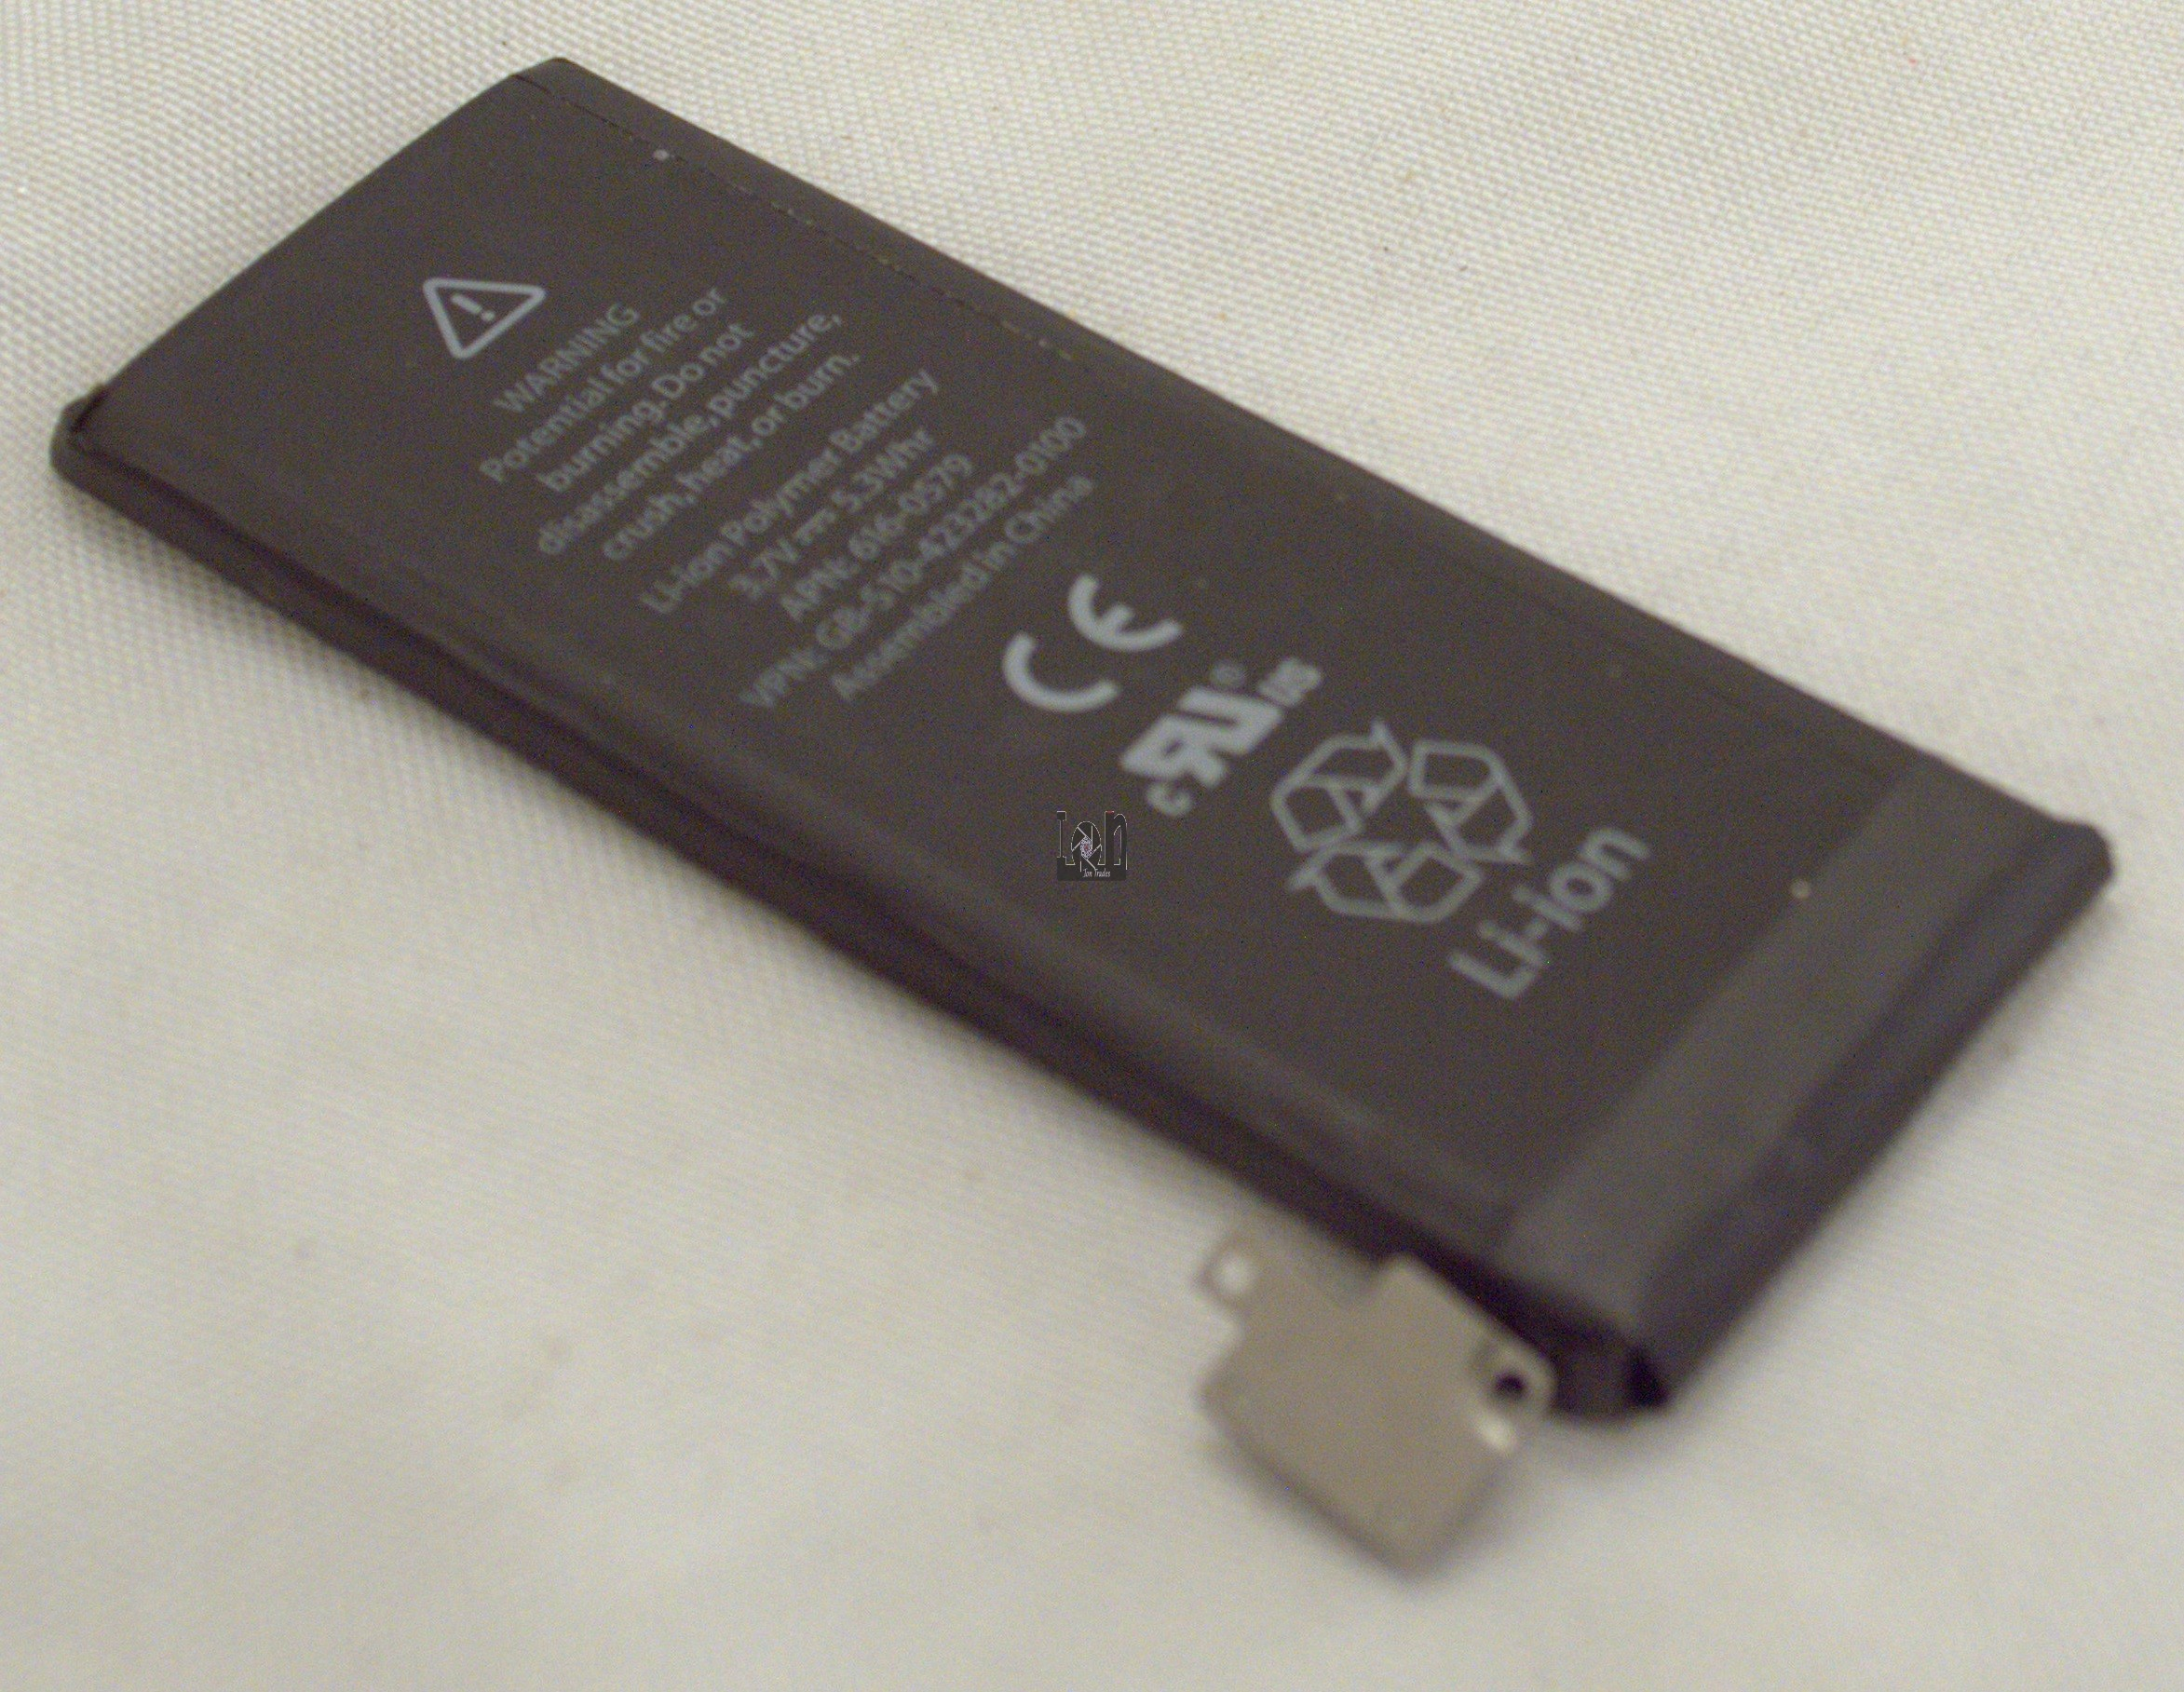 Aftermarket iphone 5 Battery 616-0613 18287-2000